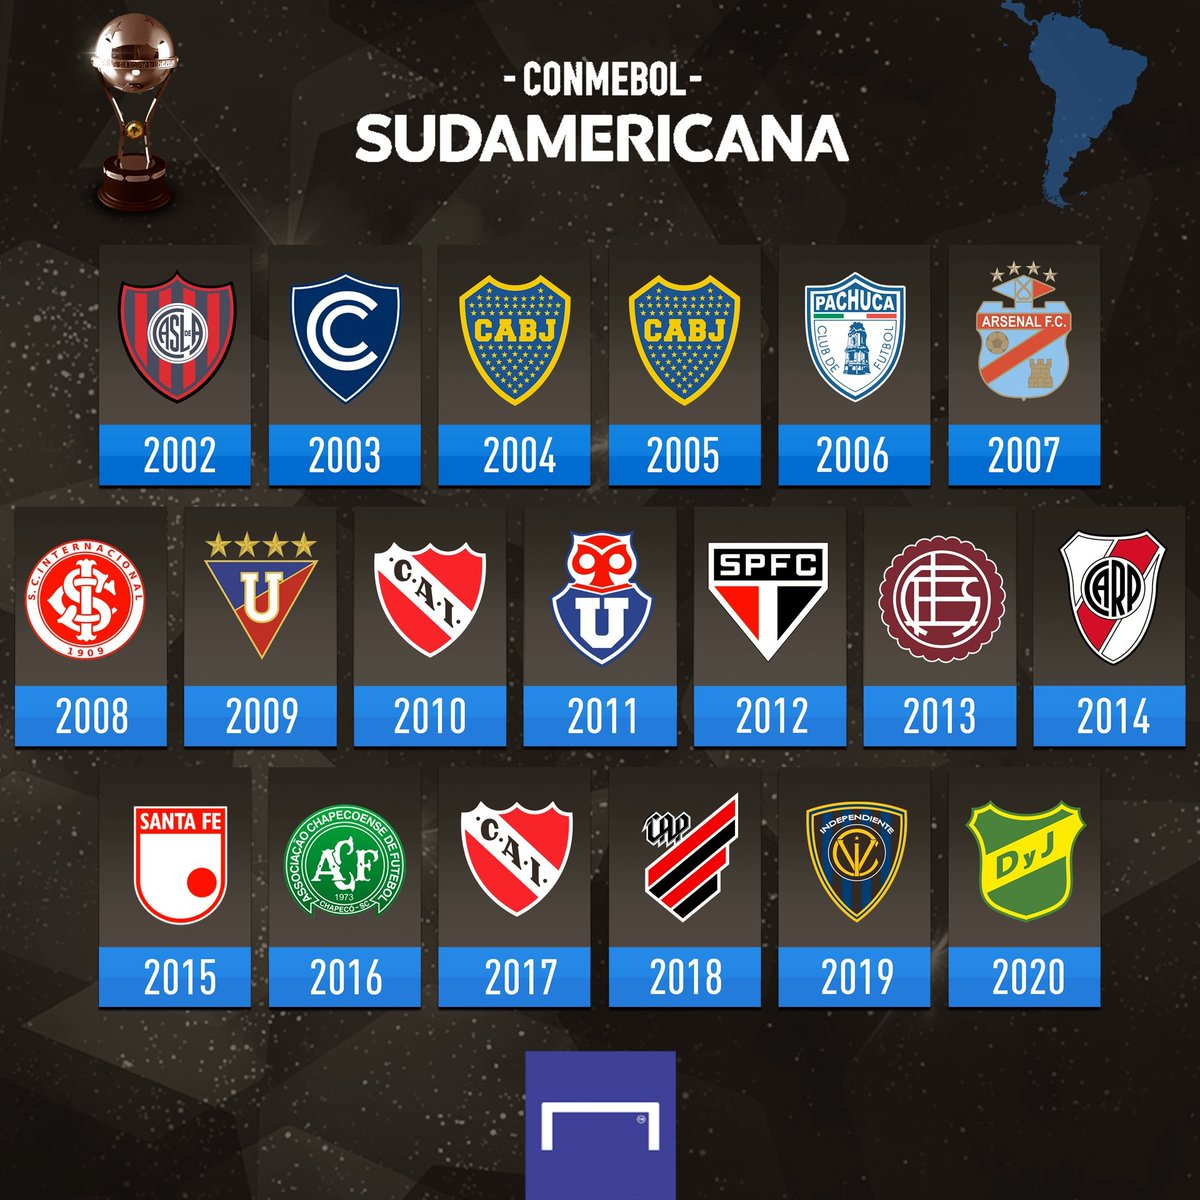 Defensa y Justicia have won the Copa Sudamericana for the first time ever 🏆